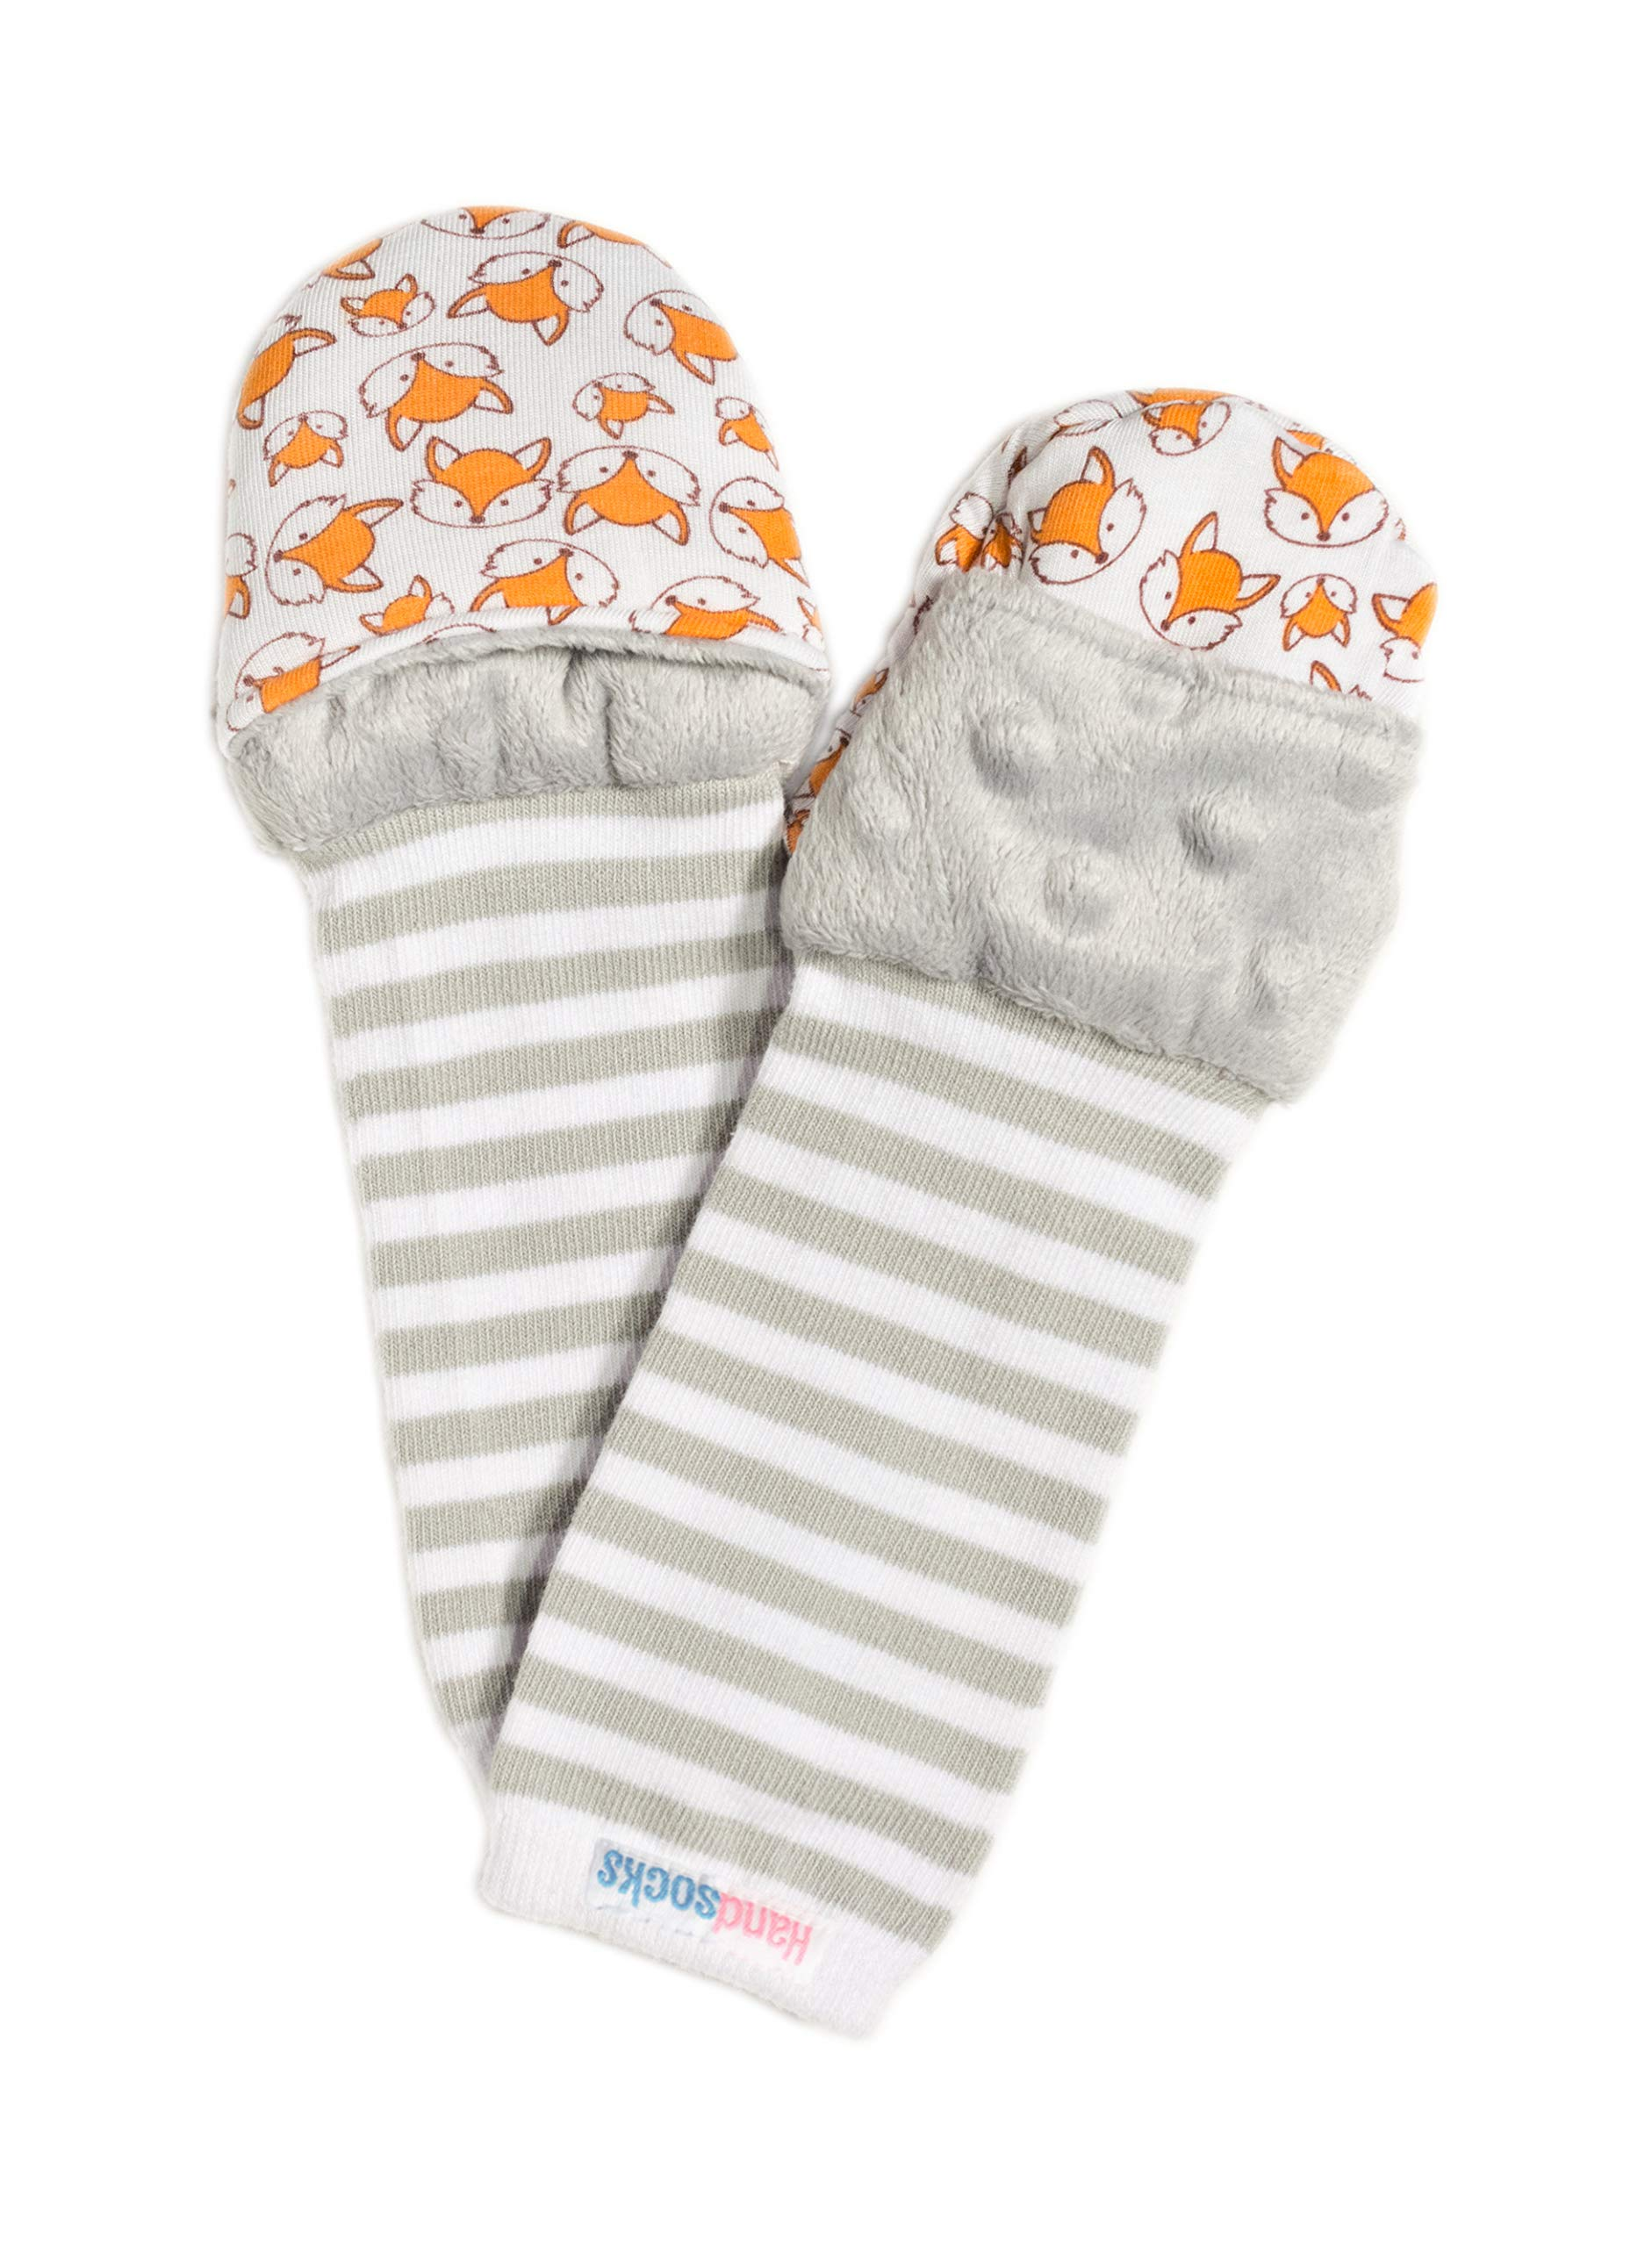 b310f5e20 Amazon.com: Handsocks Plushy Stay On Strap-Free No-Scratch & Warmth Mittens  (Medium (6-12 Months. Bicep Size Should be Bicep 5.0